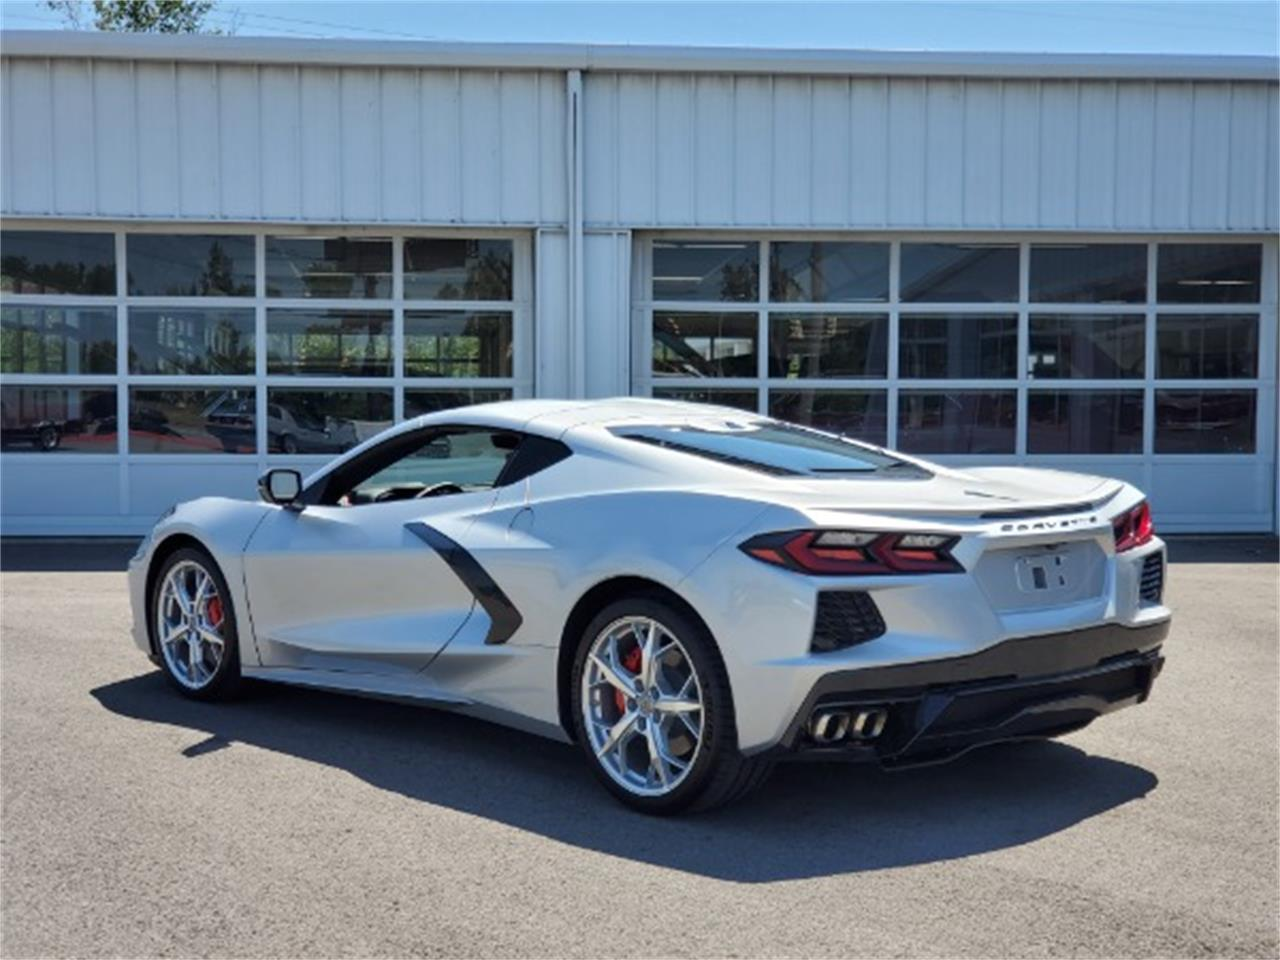 2020 Chevrolet Corvette (CC-1376980) for sale in Columbus, Ohio